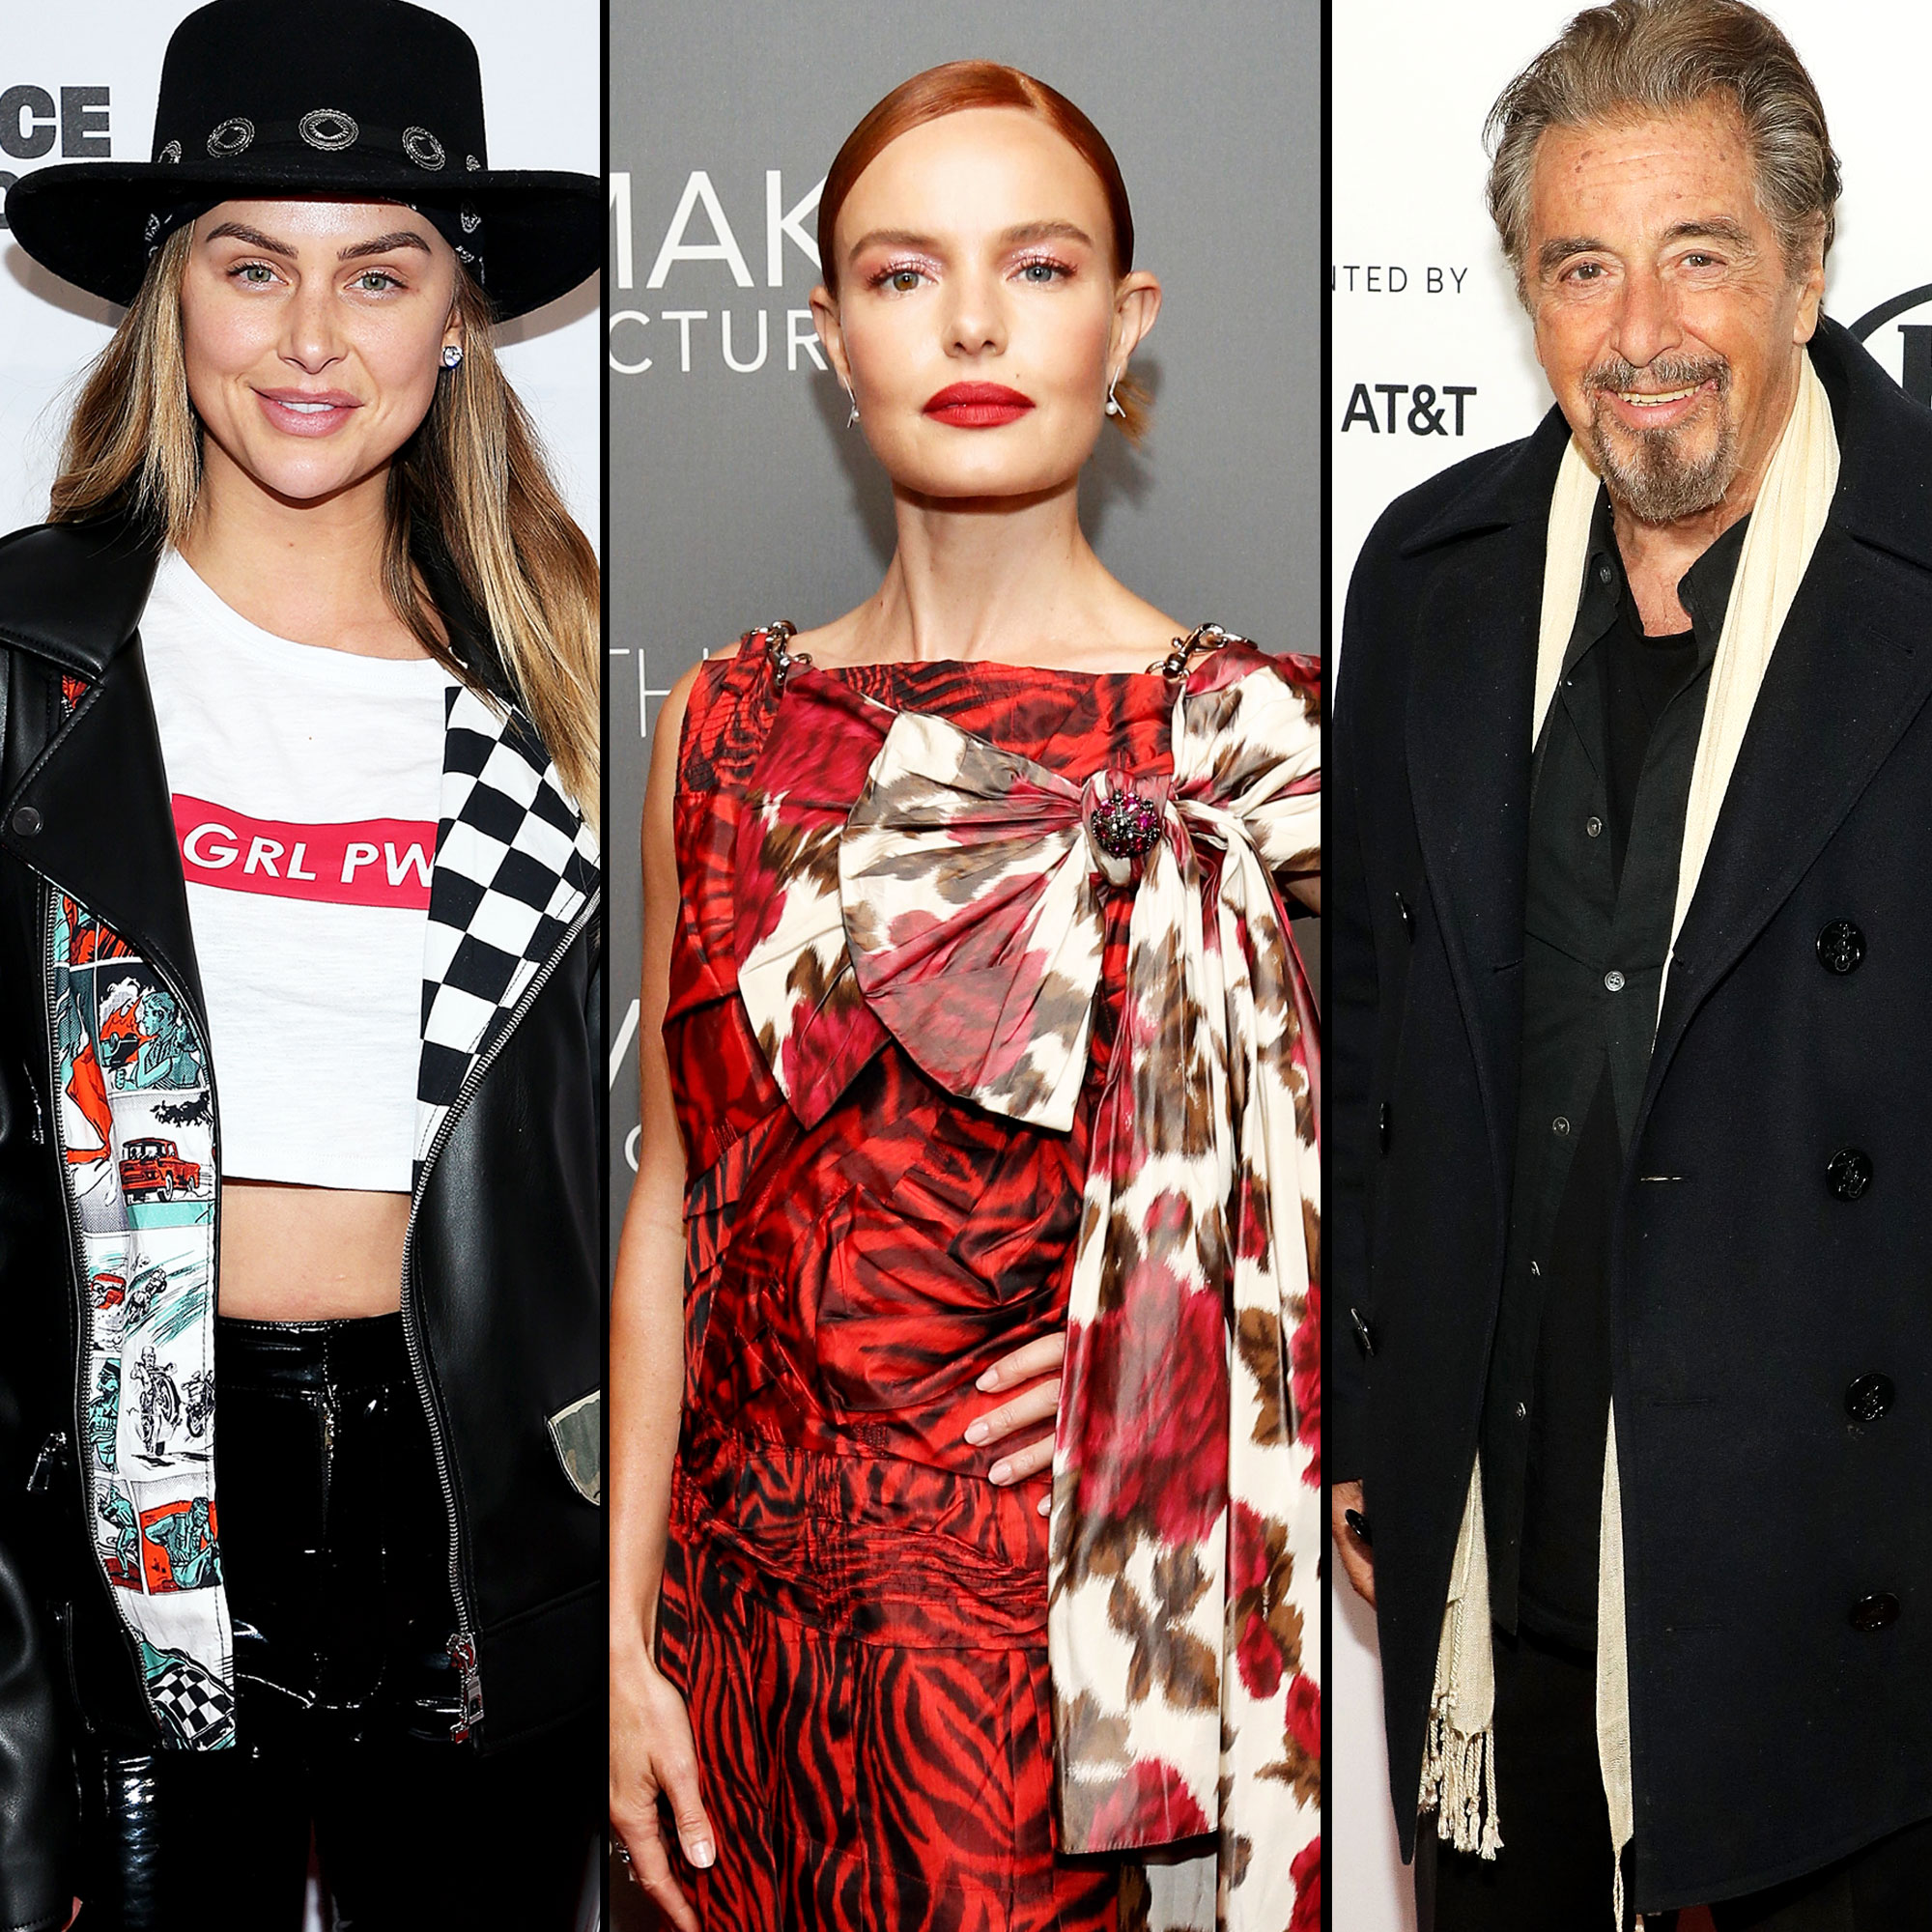 'Vanderpump Rules' Star Lala Kent Looks Unrecognizable in Photos From New Movie With Kate Bosworth and Al Pacino - Lala Kent, Kate Bosworth and Al Pacino